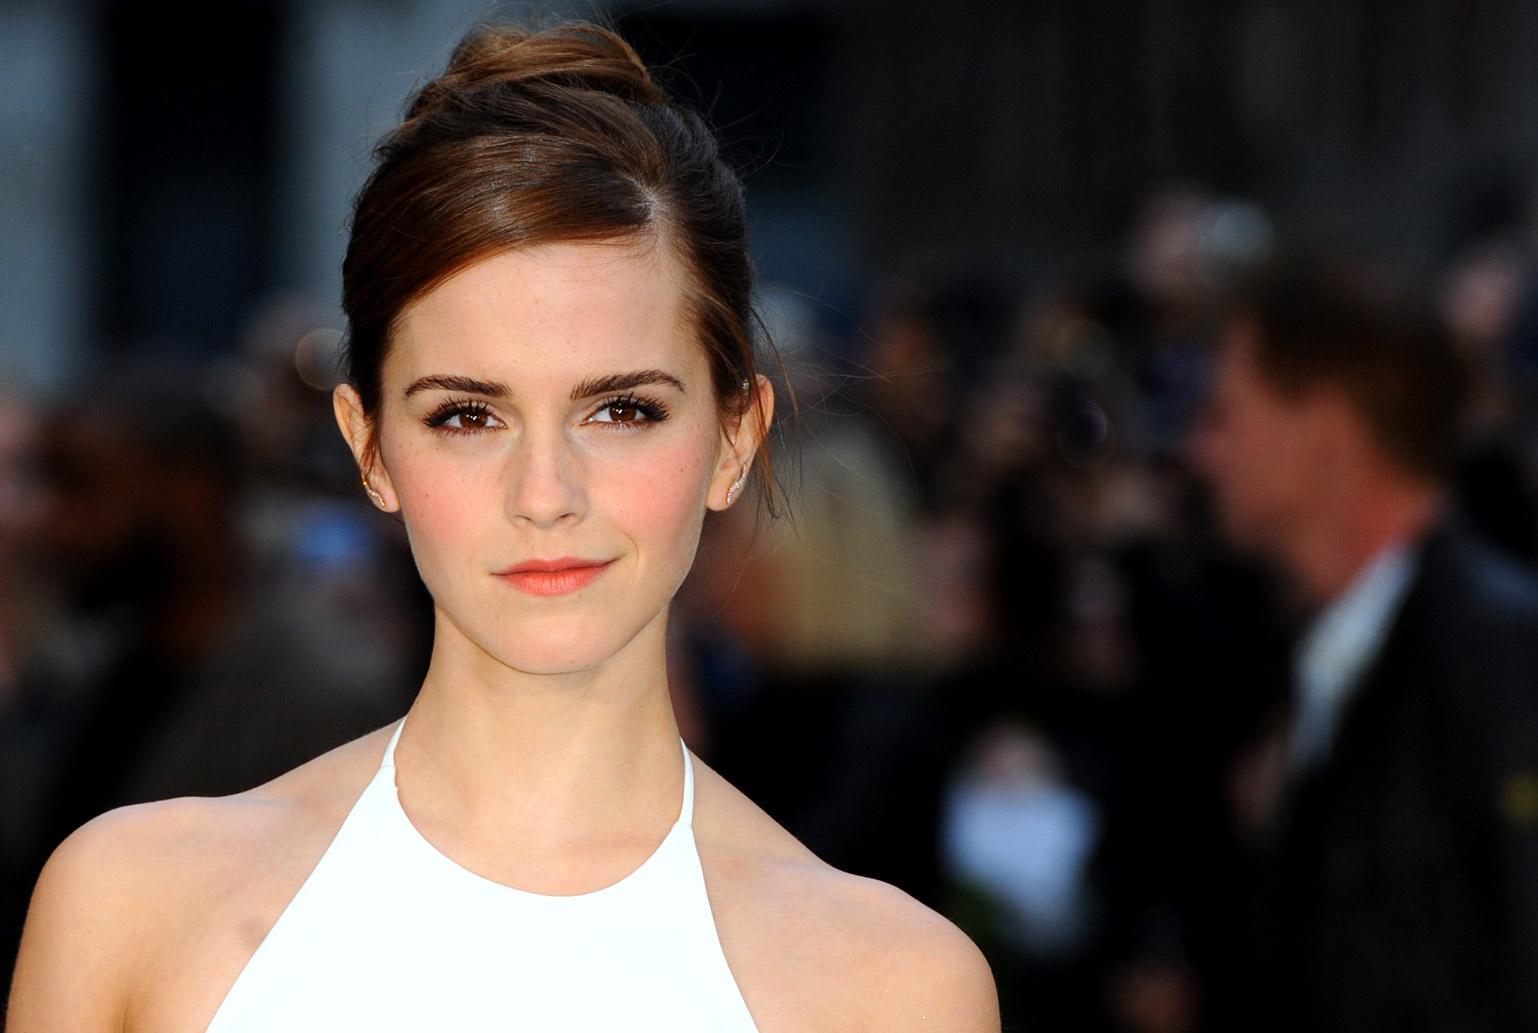 Emma Watson - An Independent And Determined Aries Woman